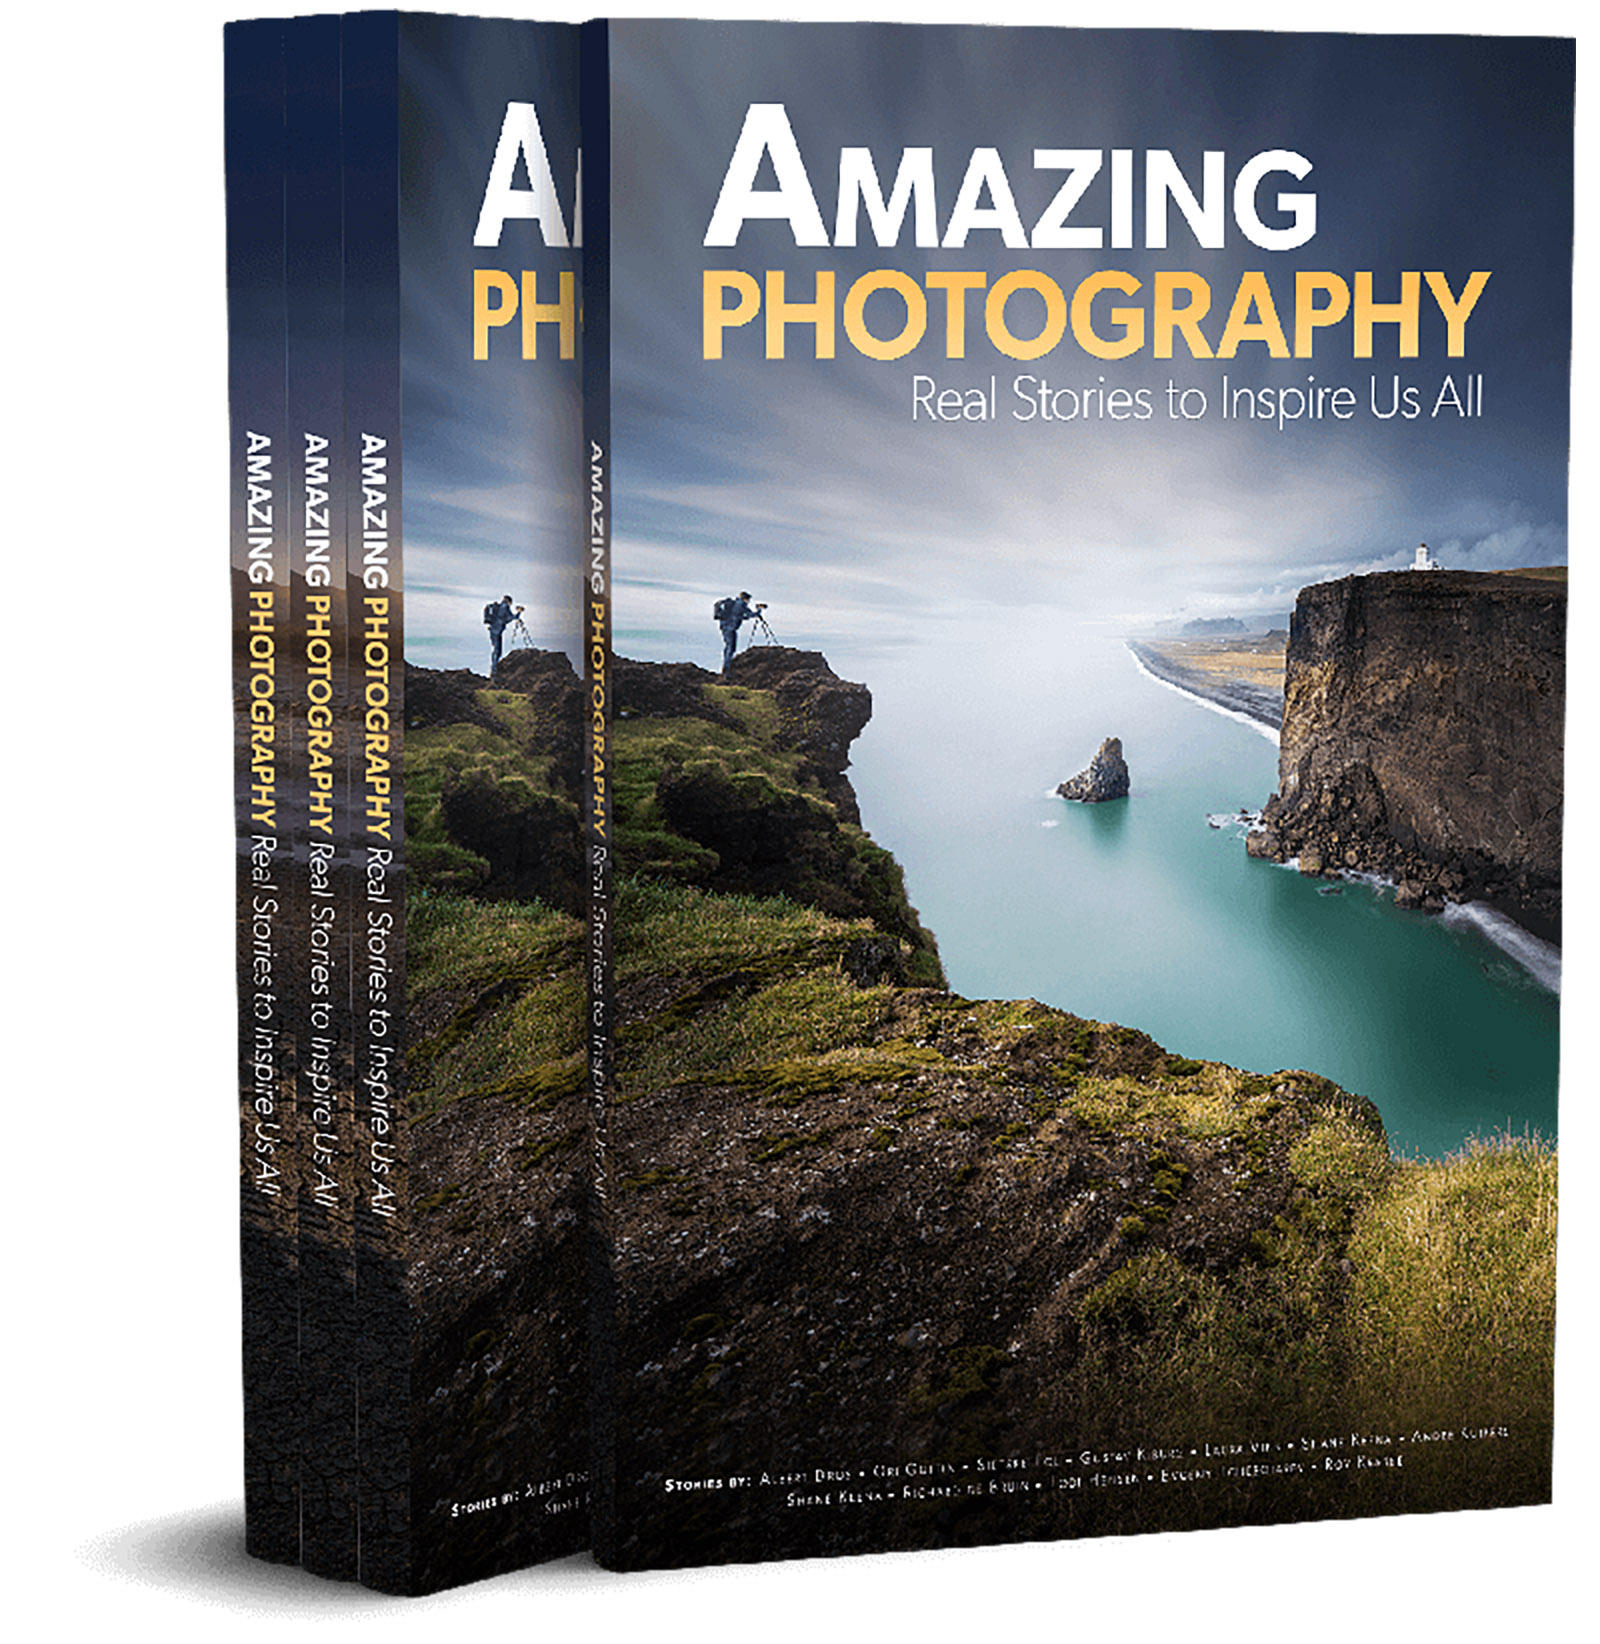 The cover of Amazing Photography